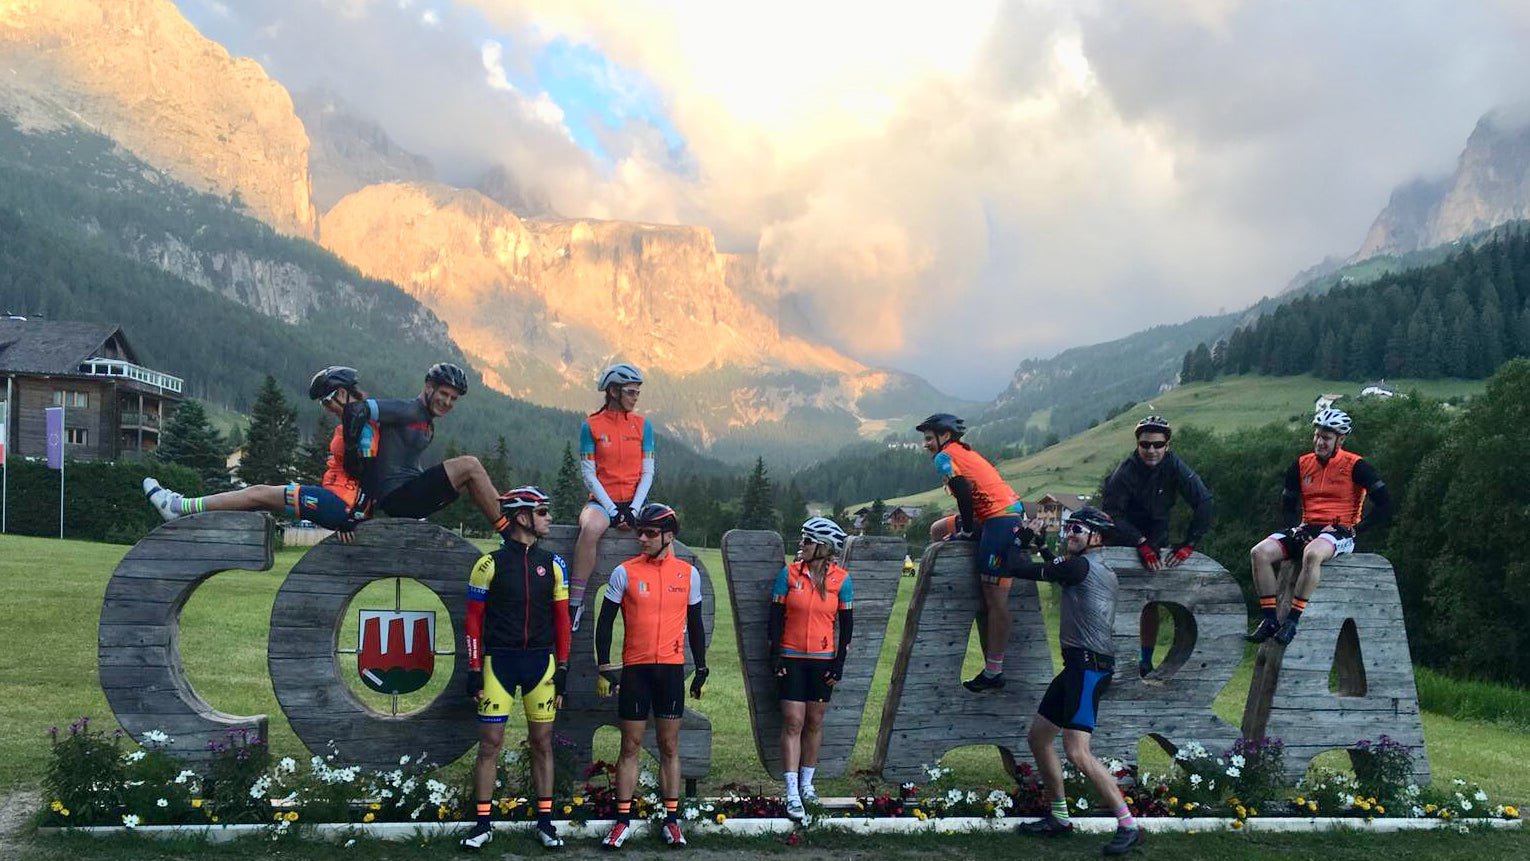 Team Nudo cc cycling socks in Corvara before the start of Maratona dles Dolomites 2018